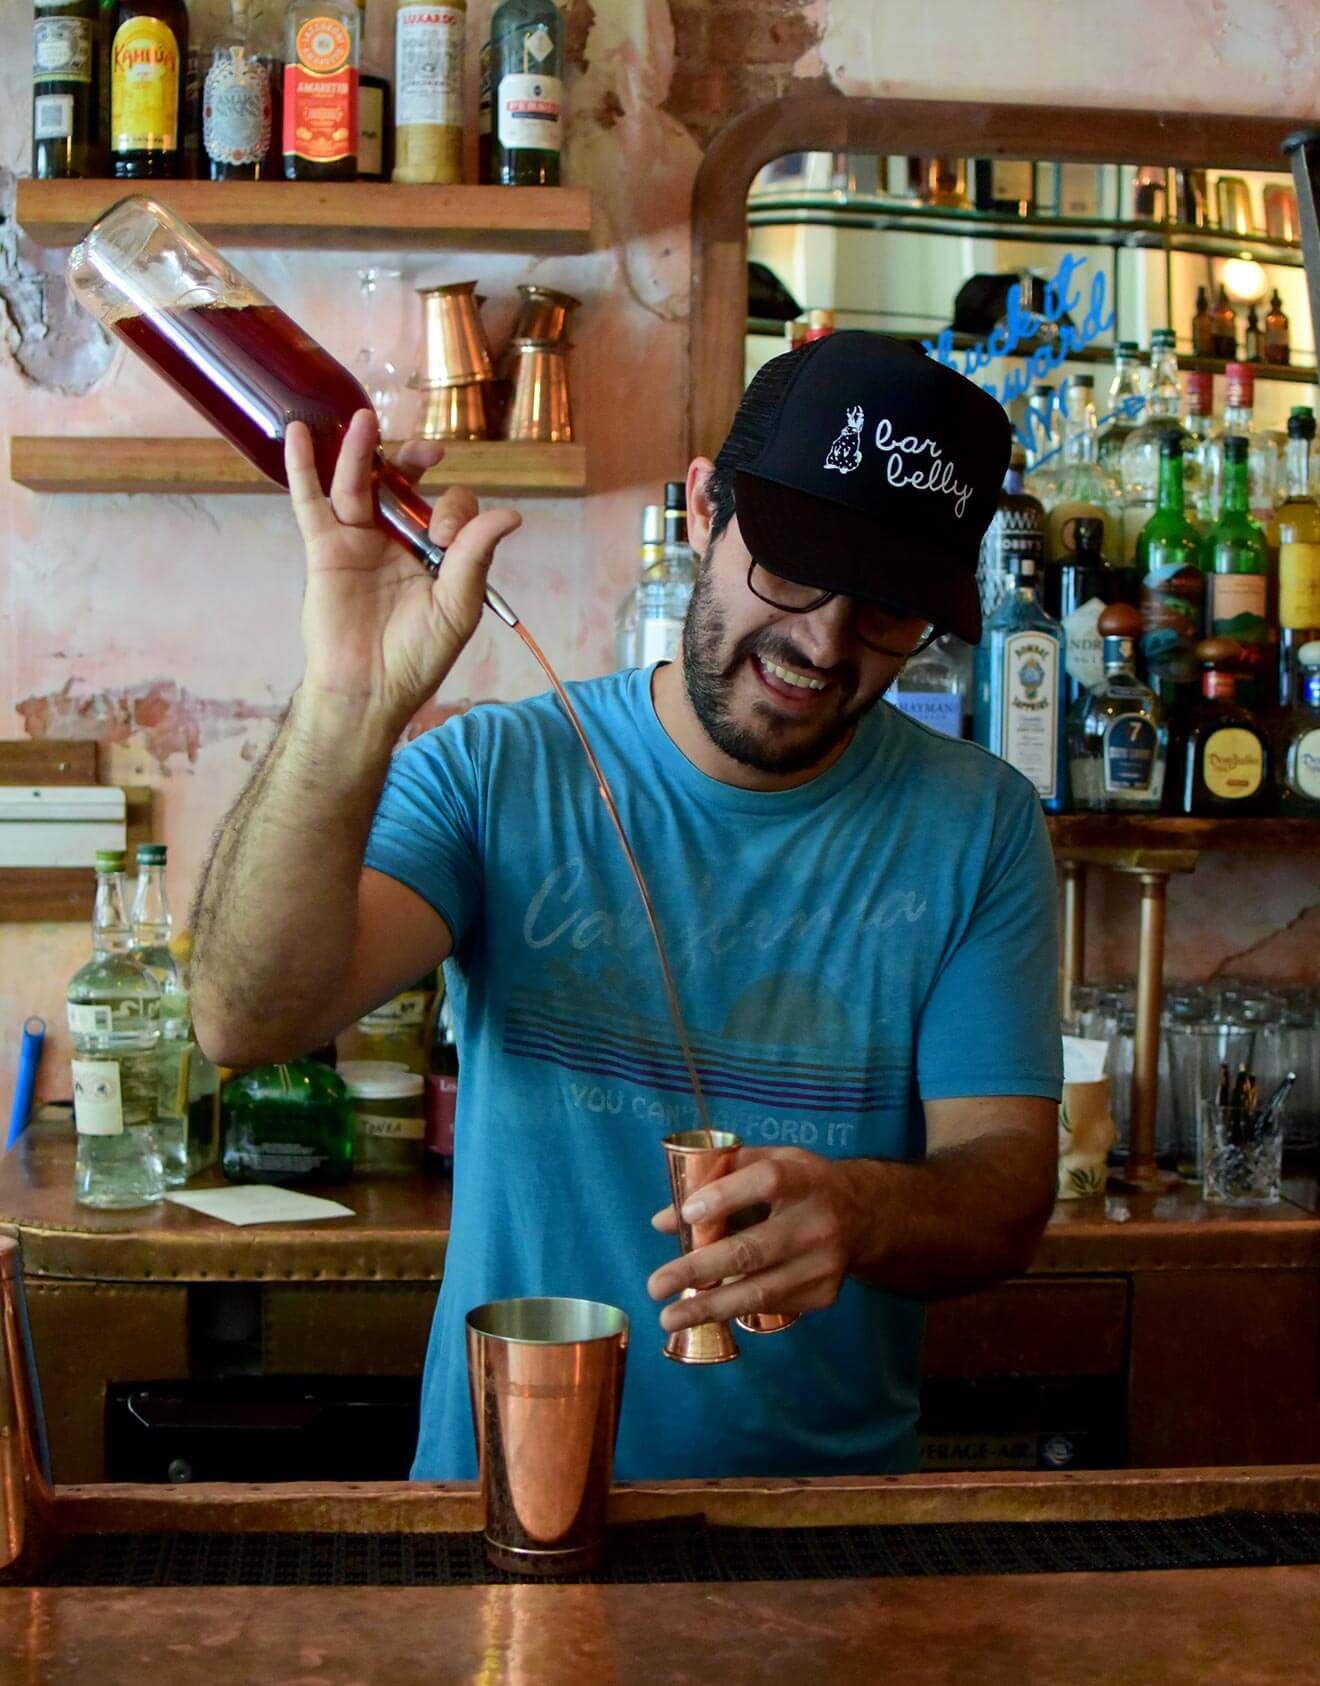 Federico Avila Pouring with a Jigger, behind the bar smiling